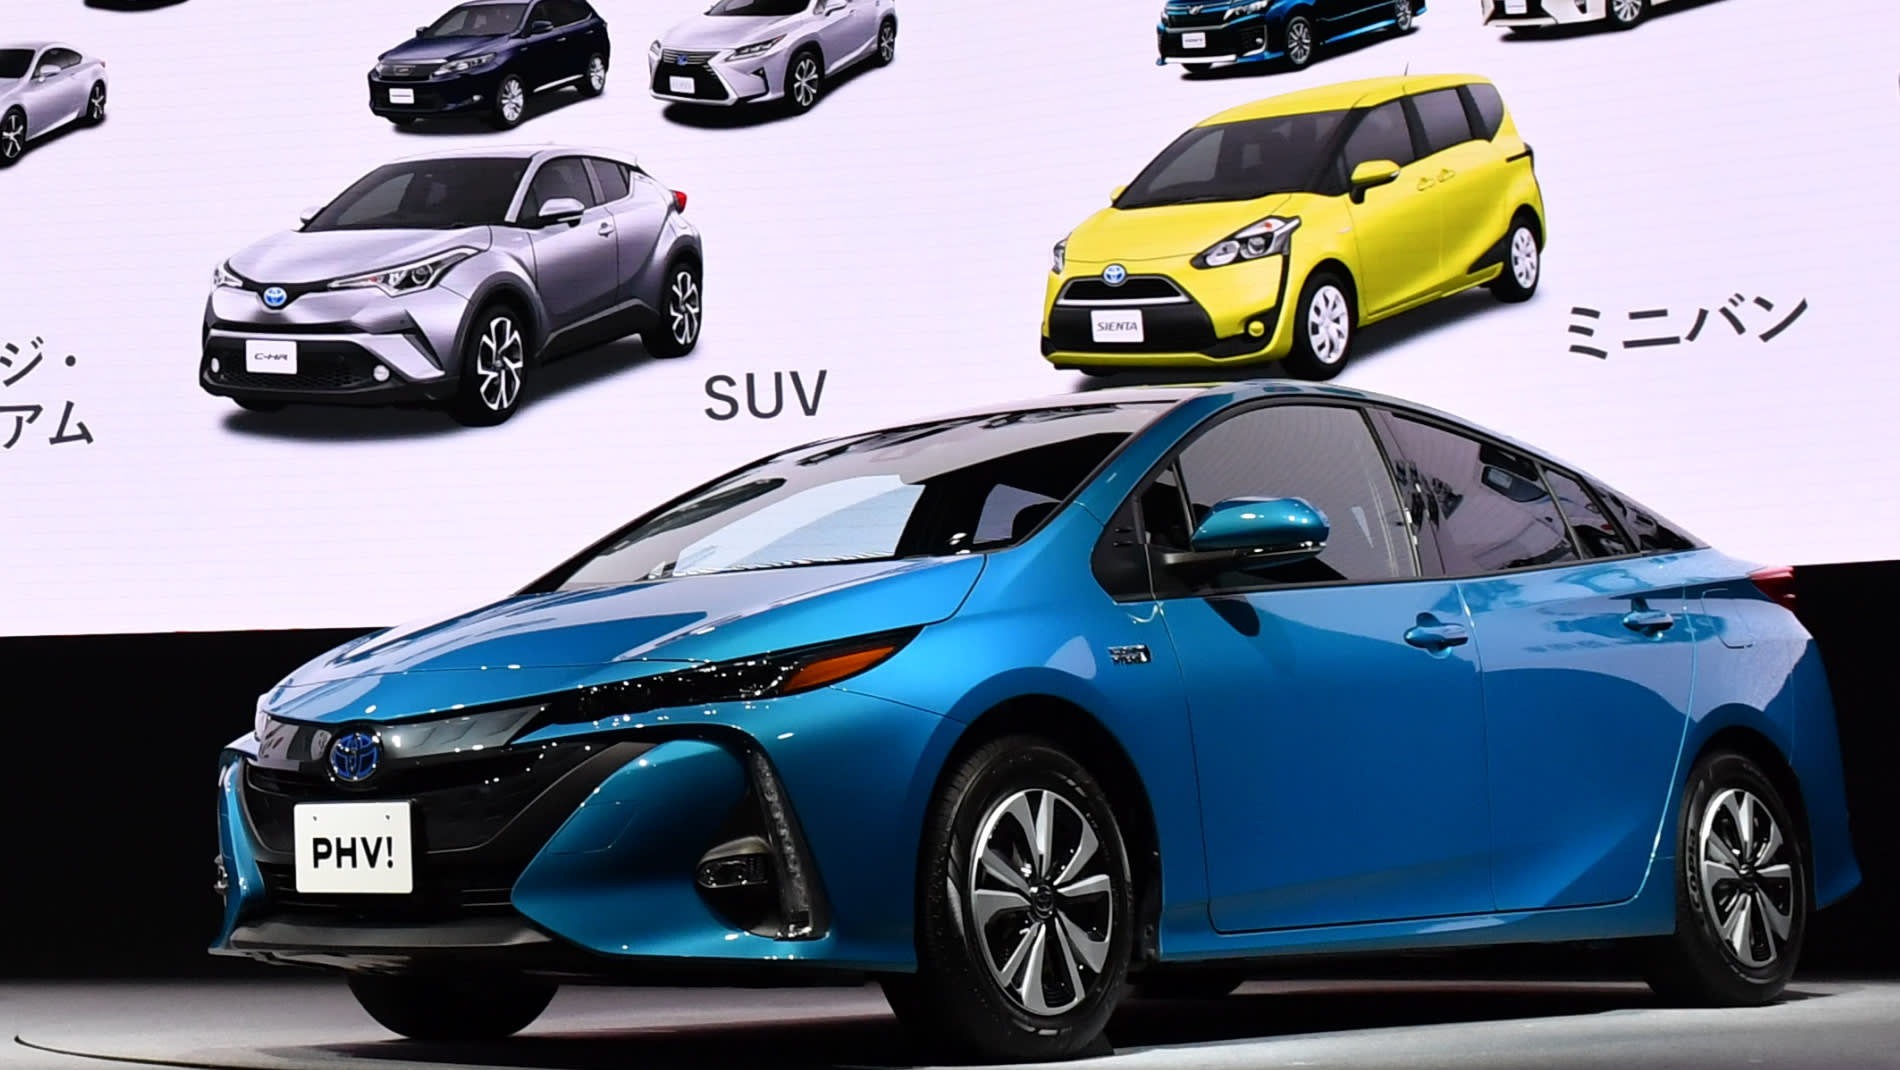 Toyota Sheds Do It All Model To Win Next Generation Car Race